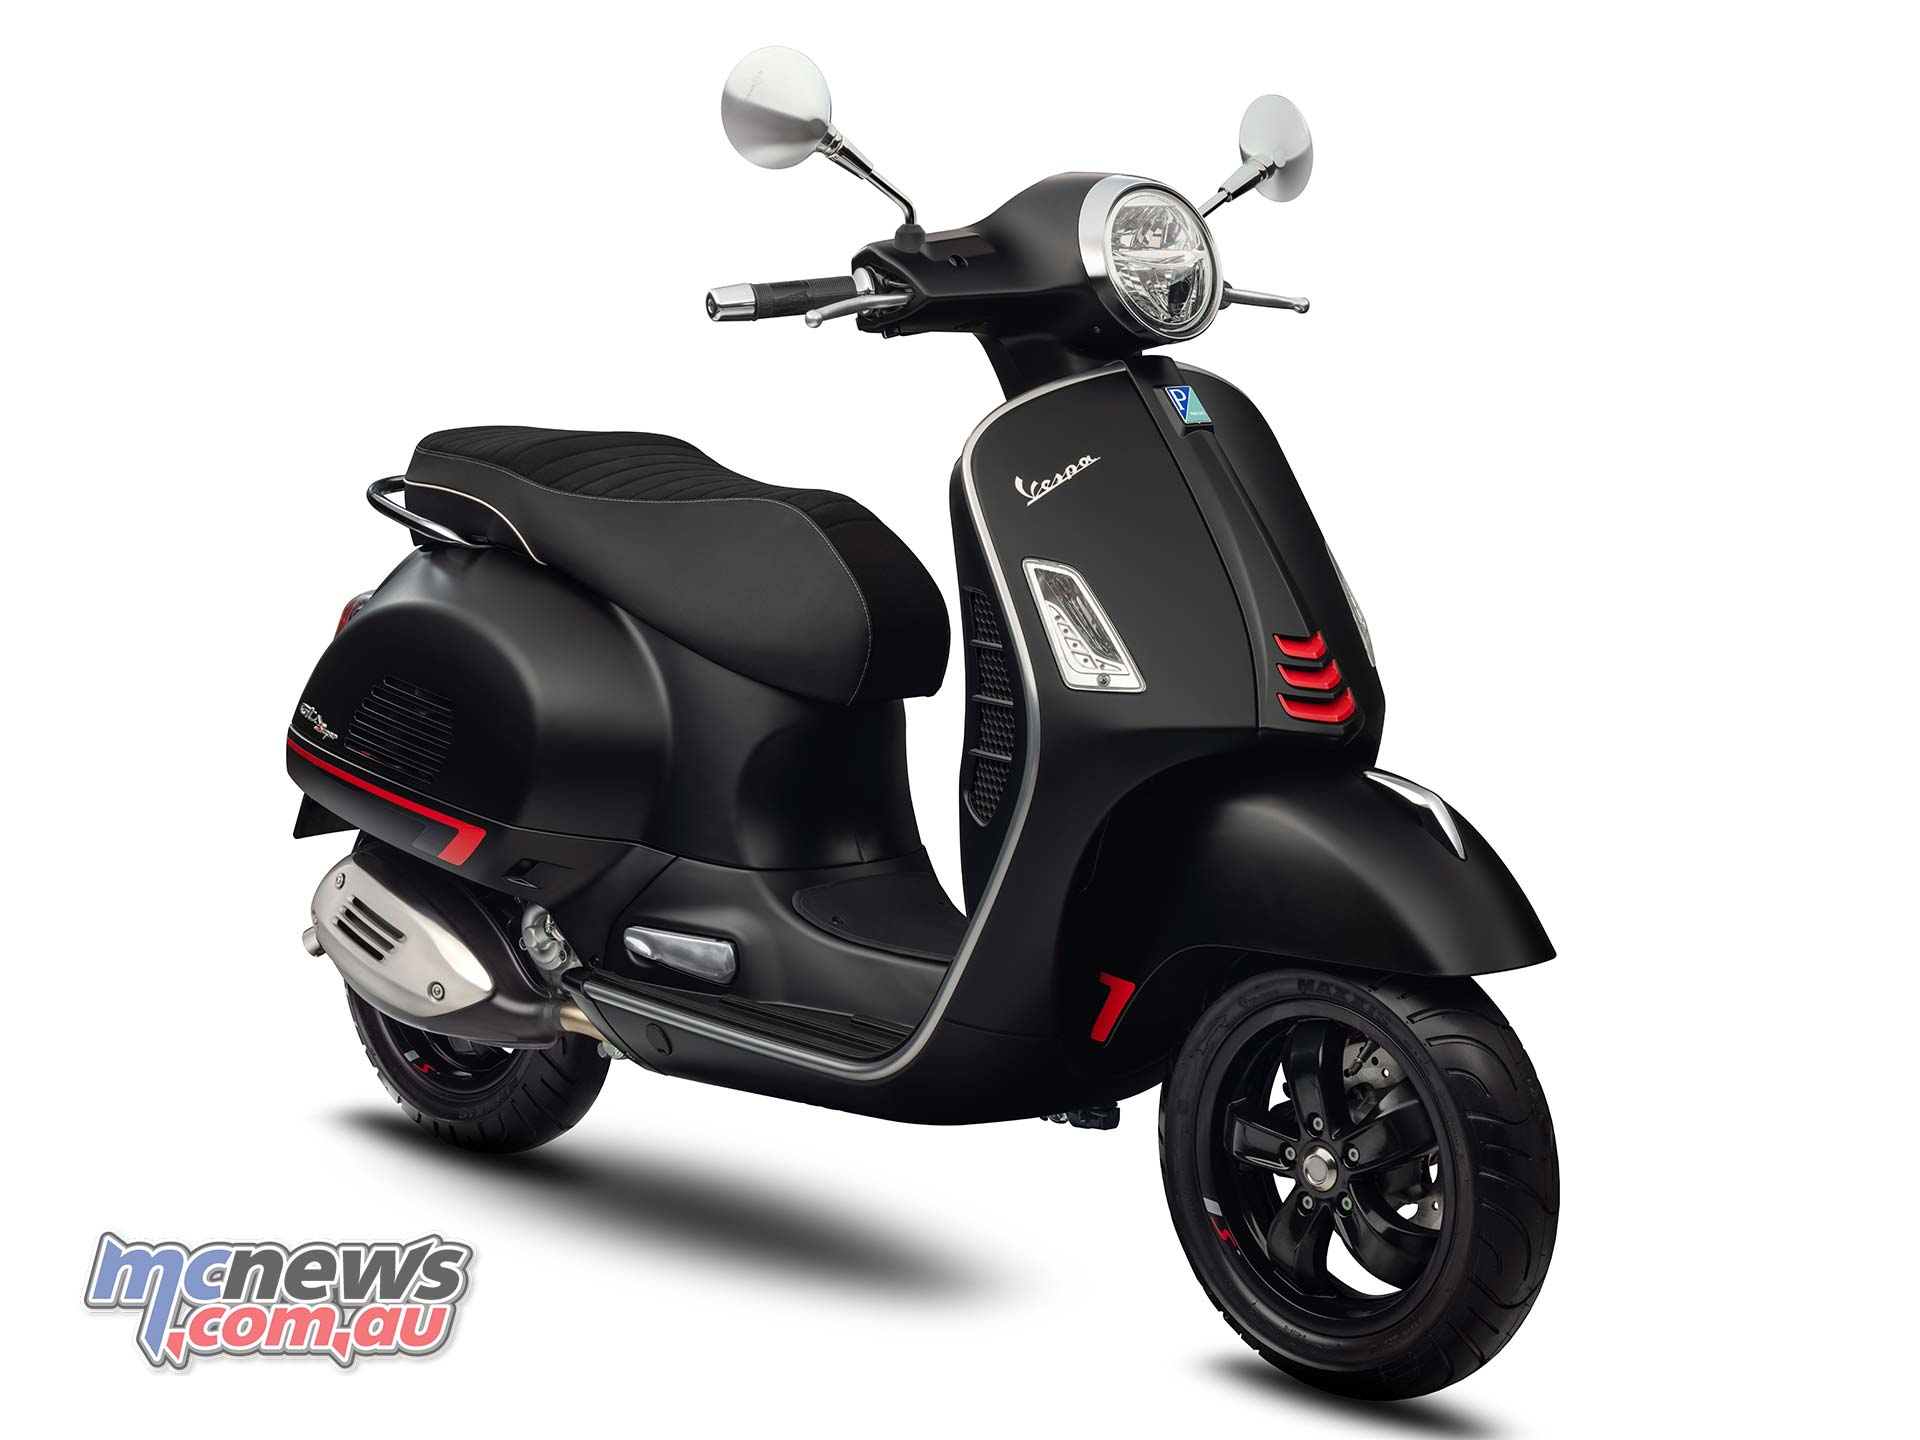 Vespa Gts Super Sport 300 Hpe Lands In Australia Motorcycle News Sport And Reviews